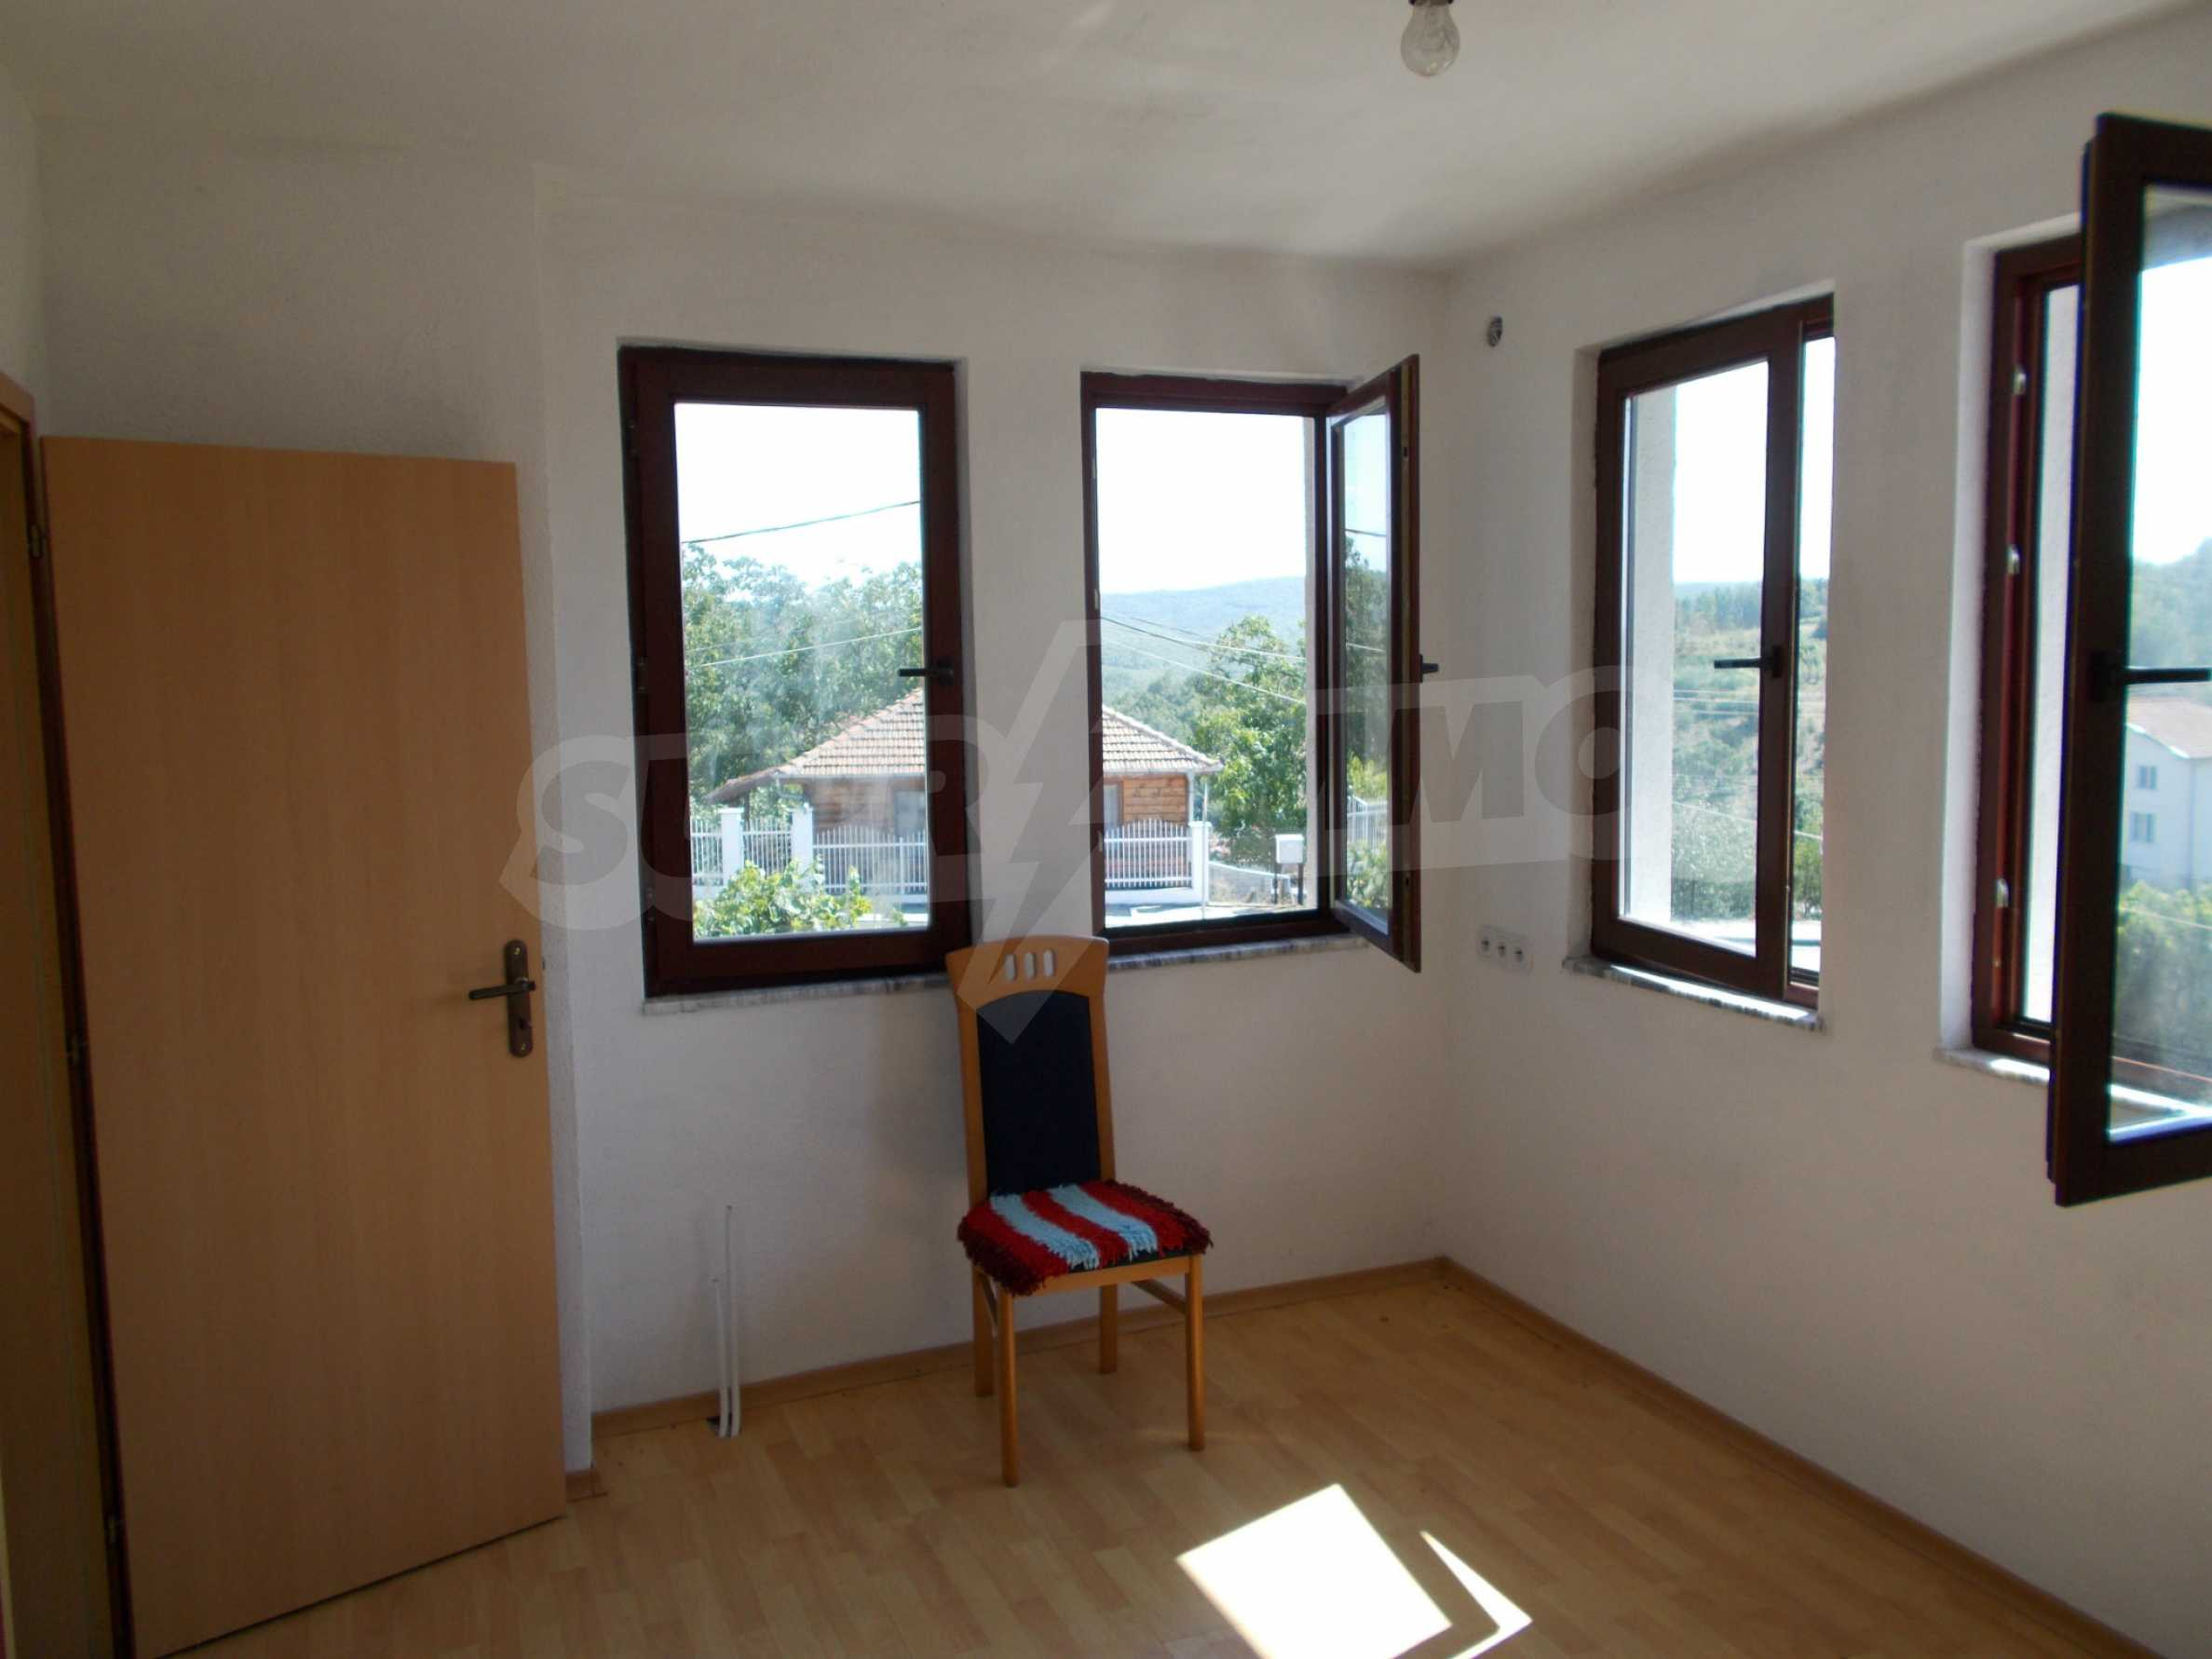 Two-storey house for sale near Burgas 18